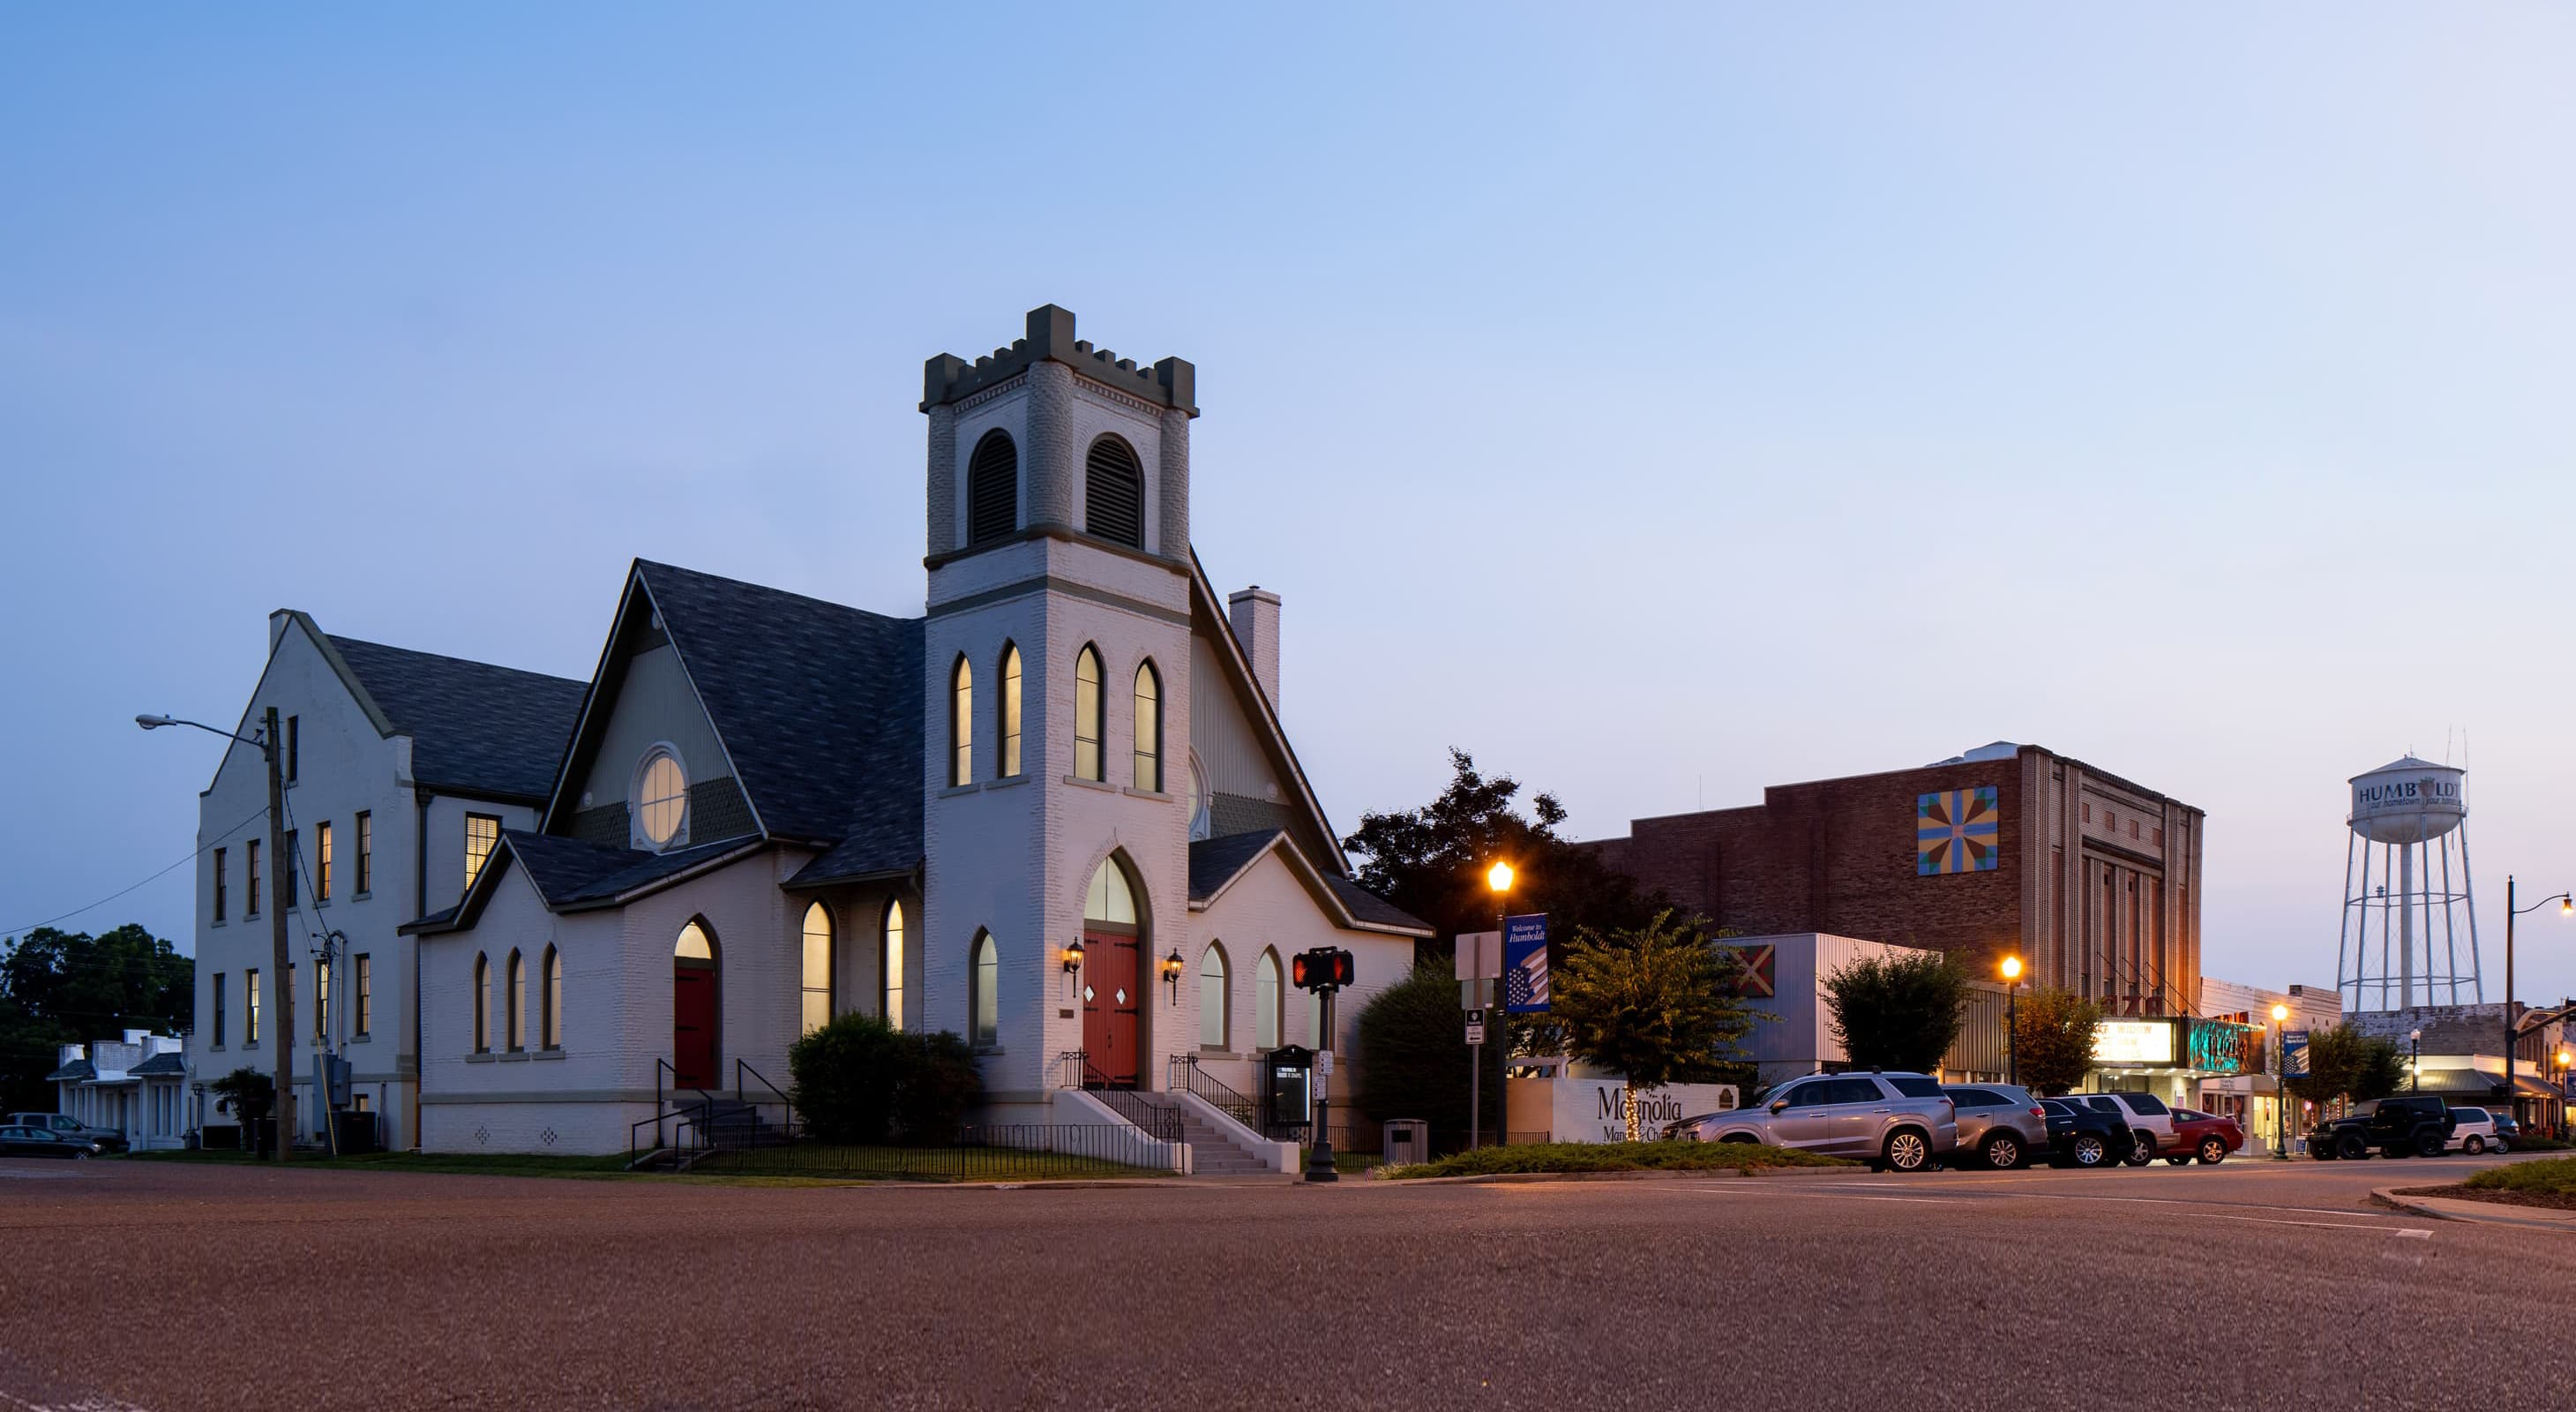 exterior of old church wedding venue at dusk